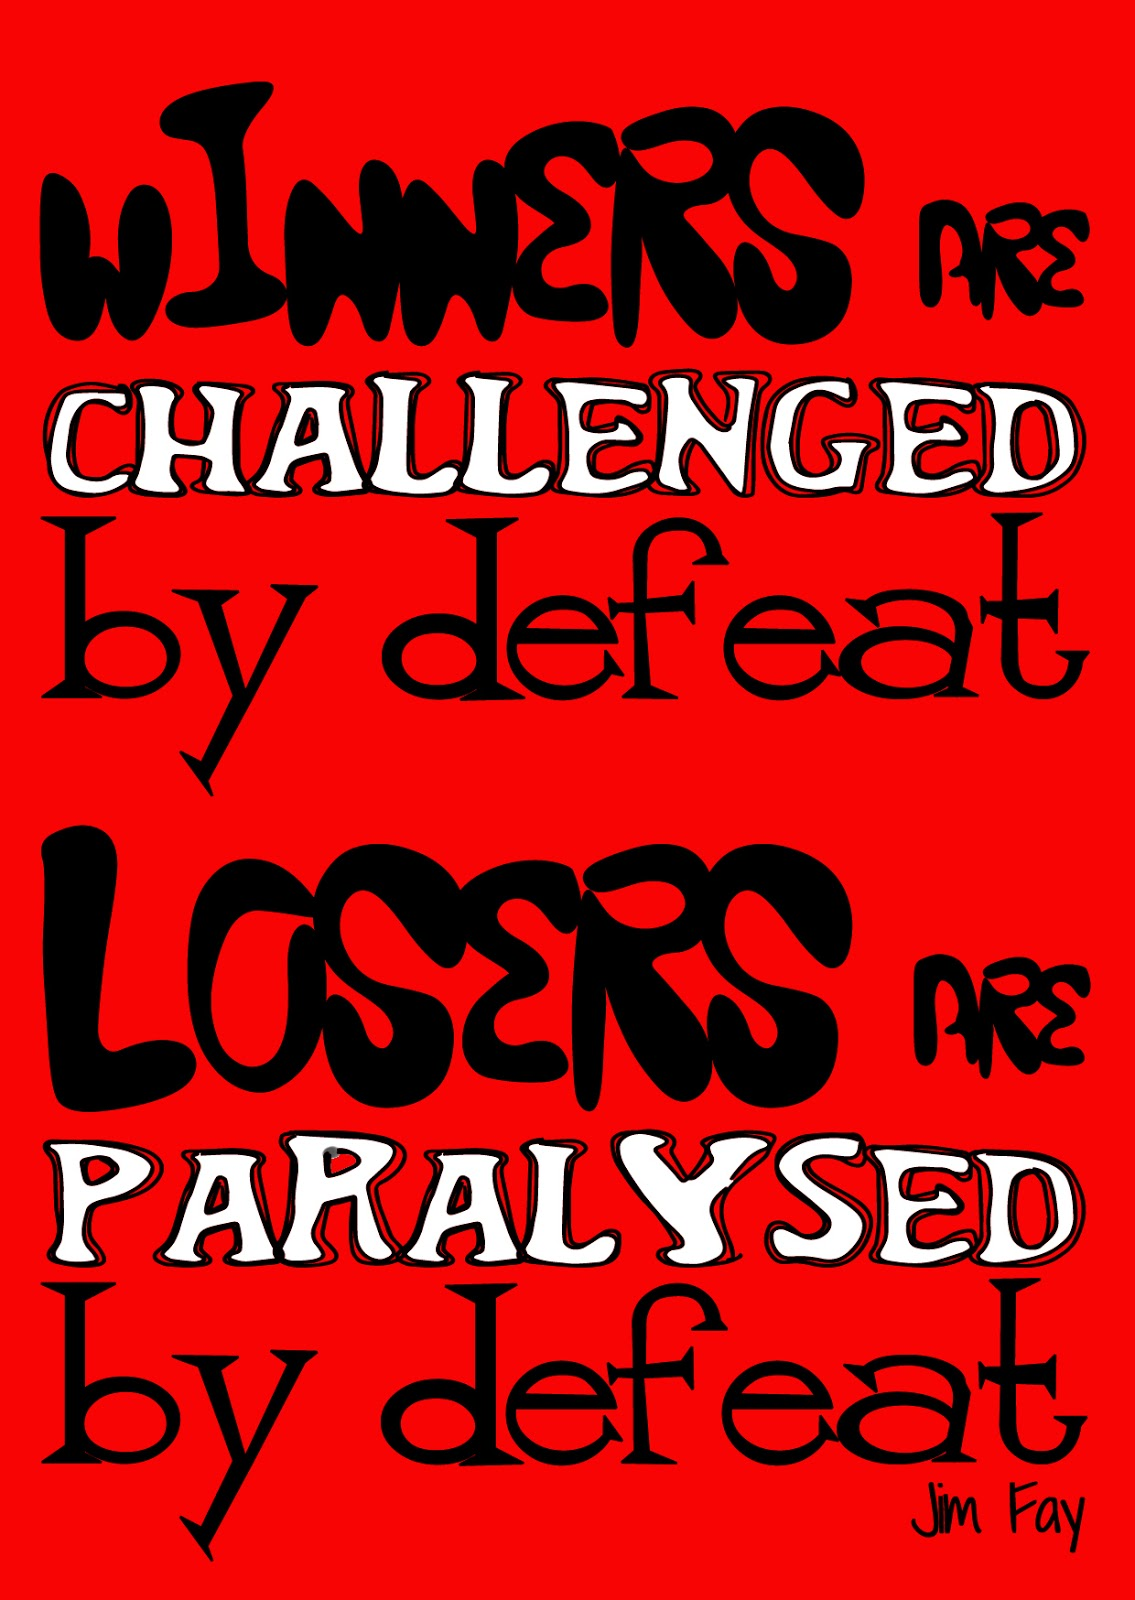 Winners are challenged by defeat2 logic